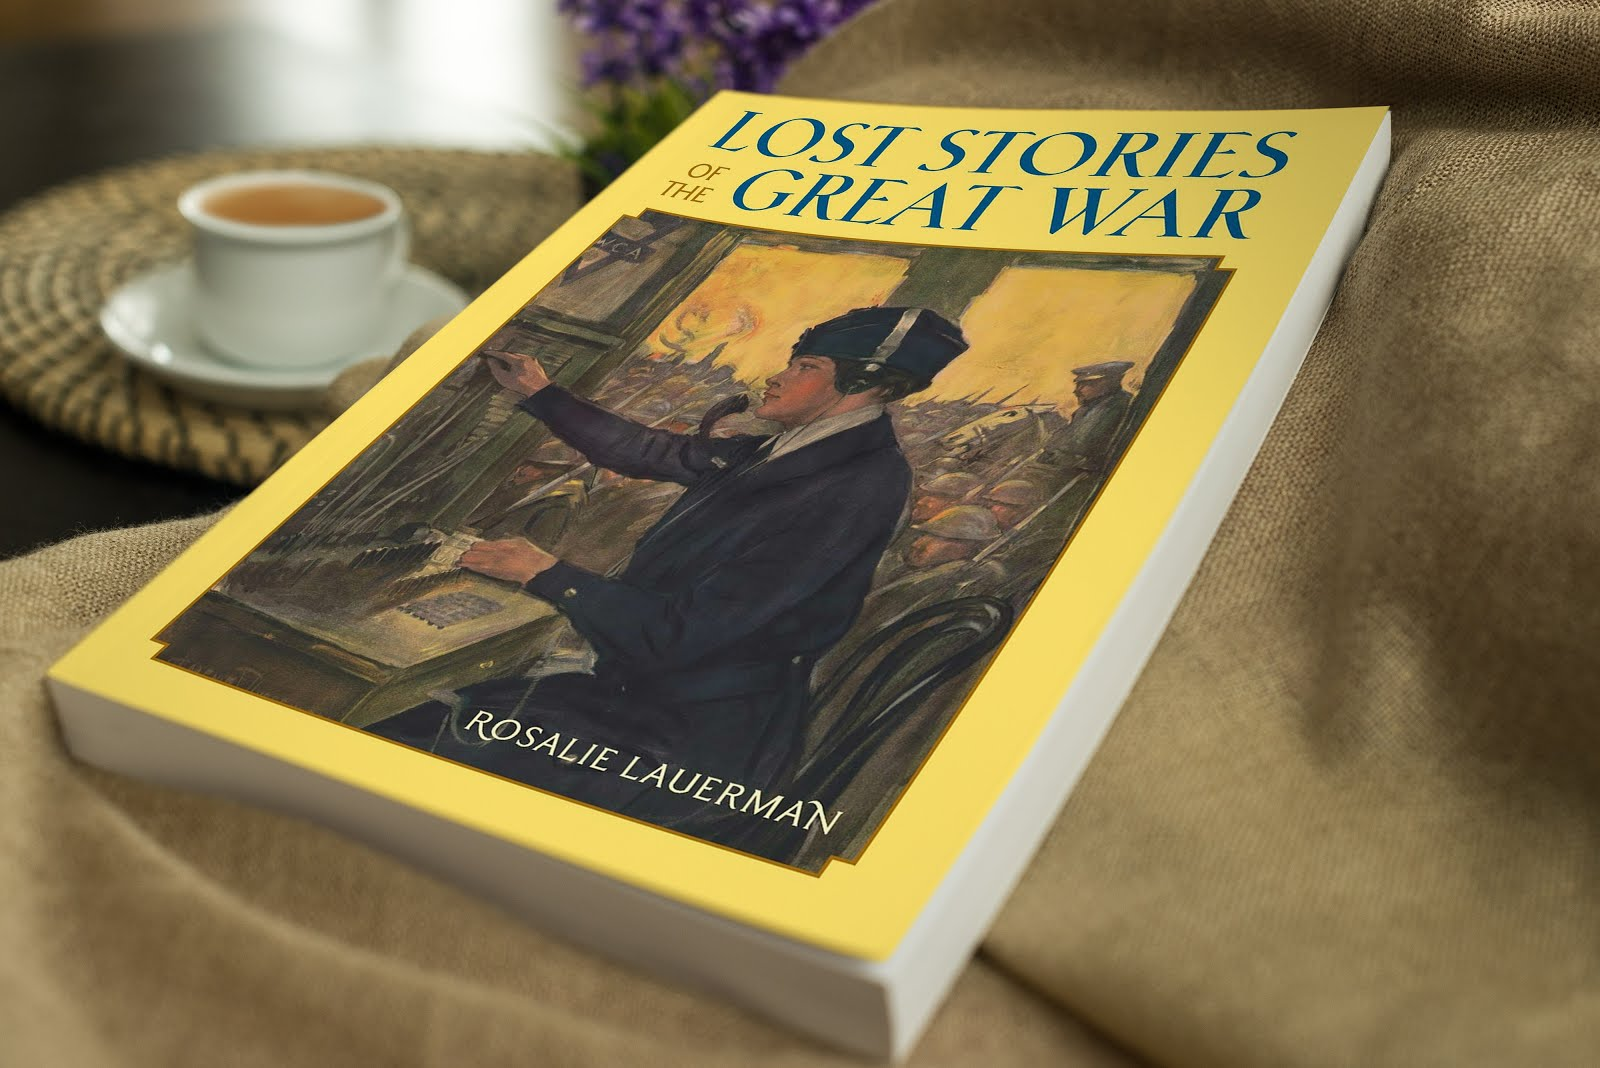 Lost Stories of the Great War Paperback – October 1, 2018 by Rosalie Lauerman  (Author)